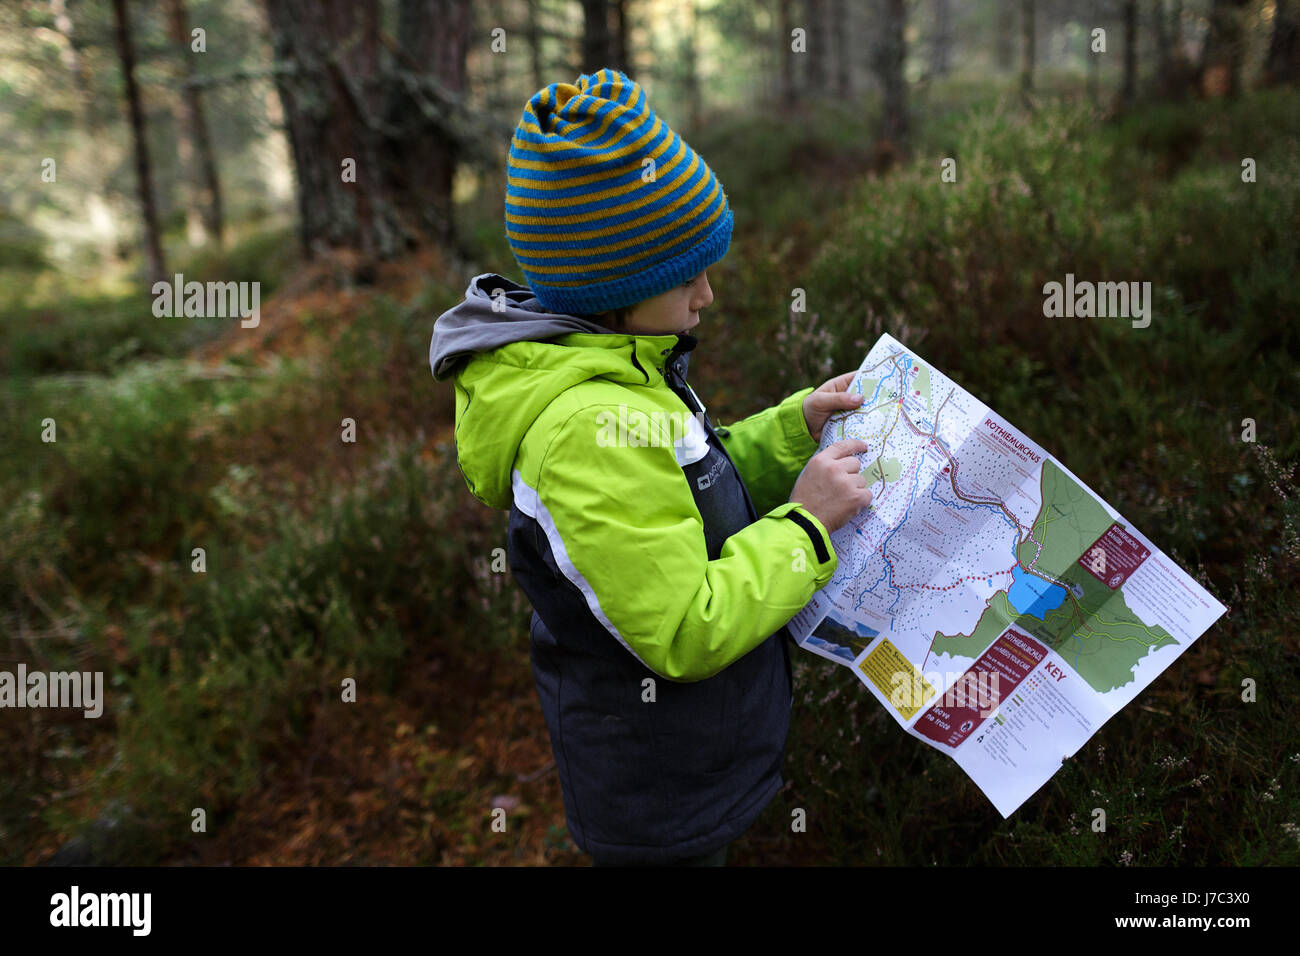 Boy reading a map in the forest, Cairngorms, Scotland, UK. - Stock Image